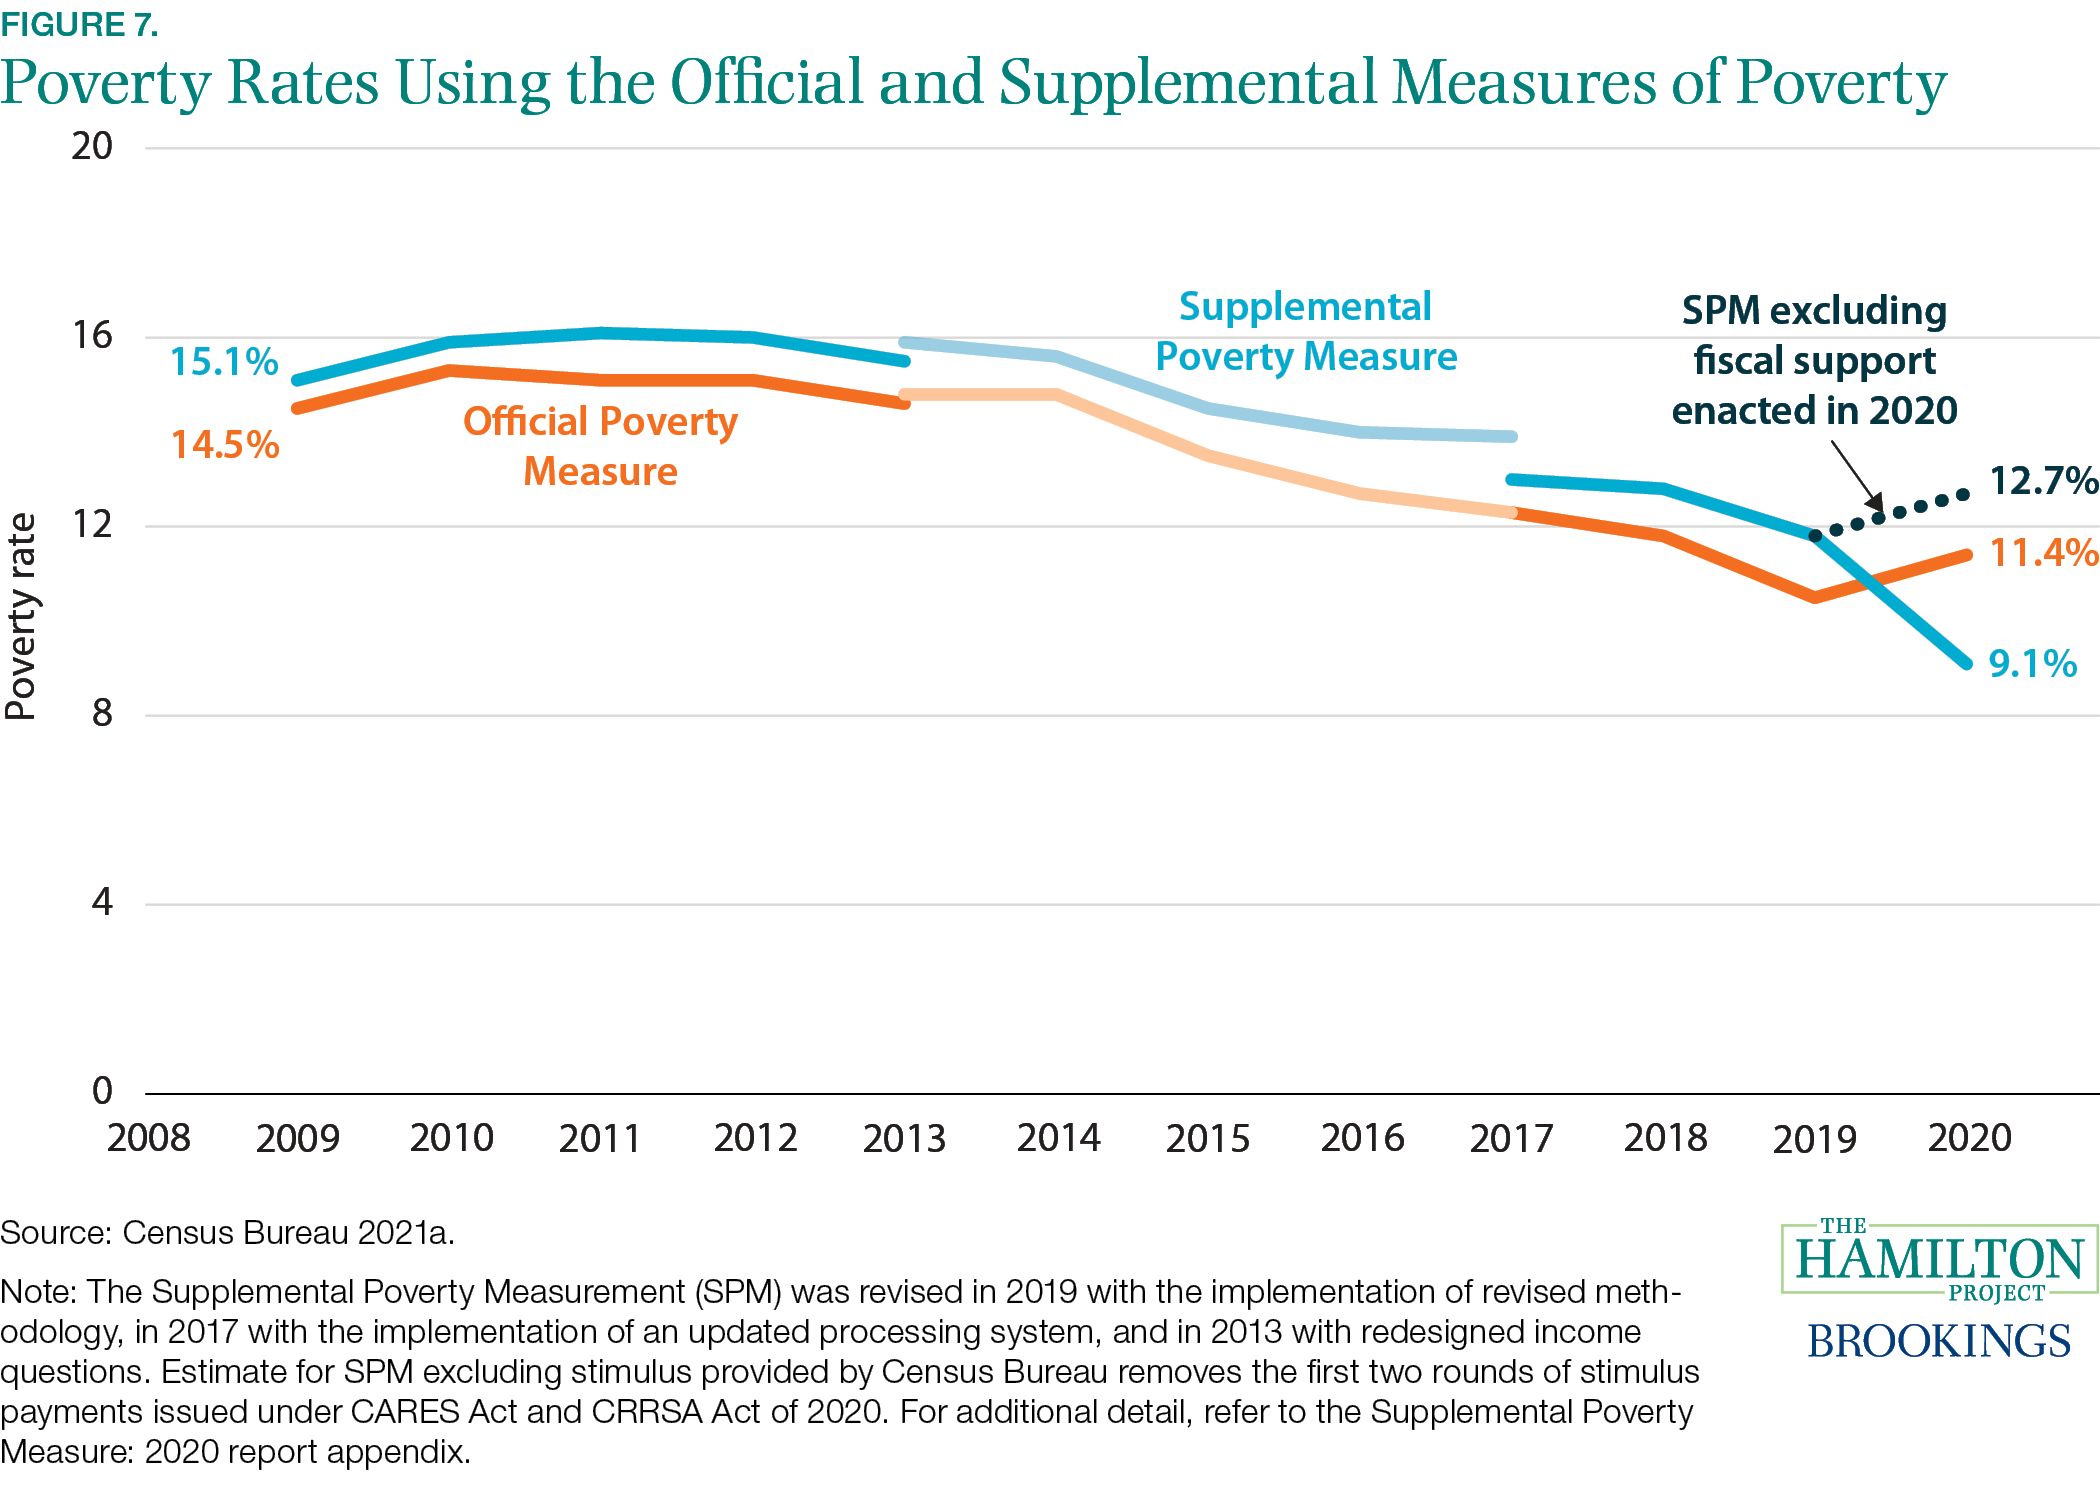 Fact 7: Fiscal support led to a reduction in poverty in 2020.